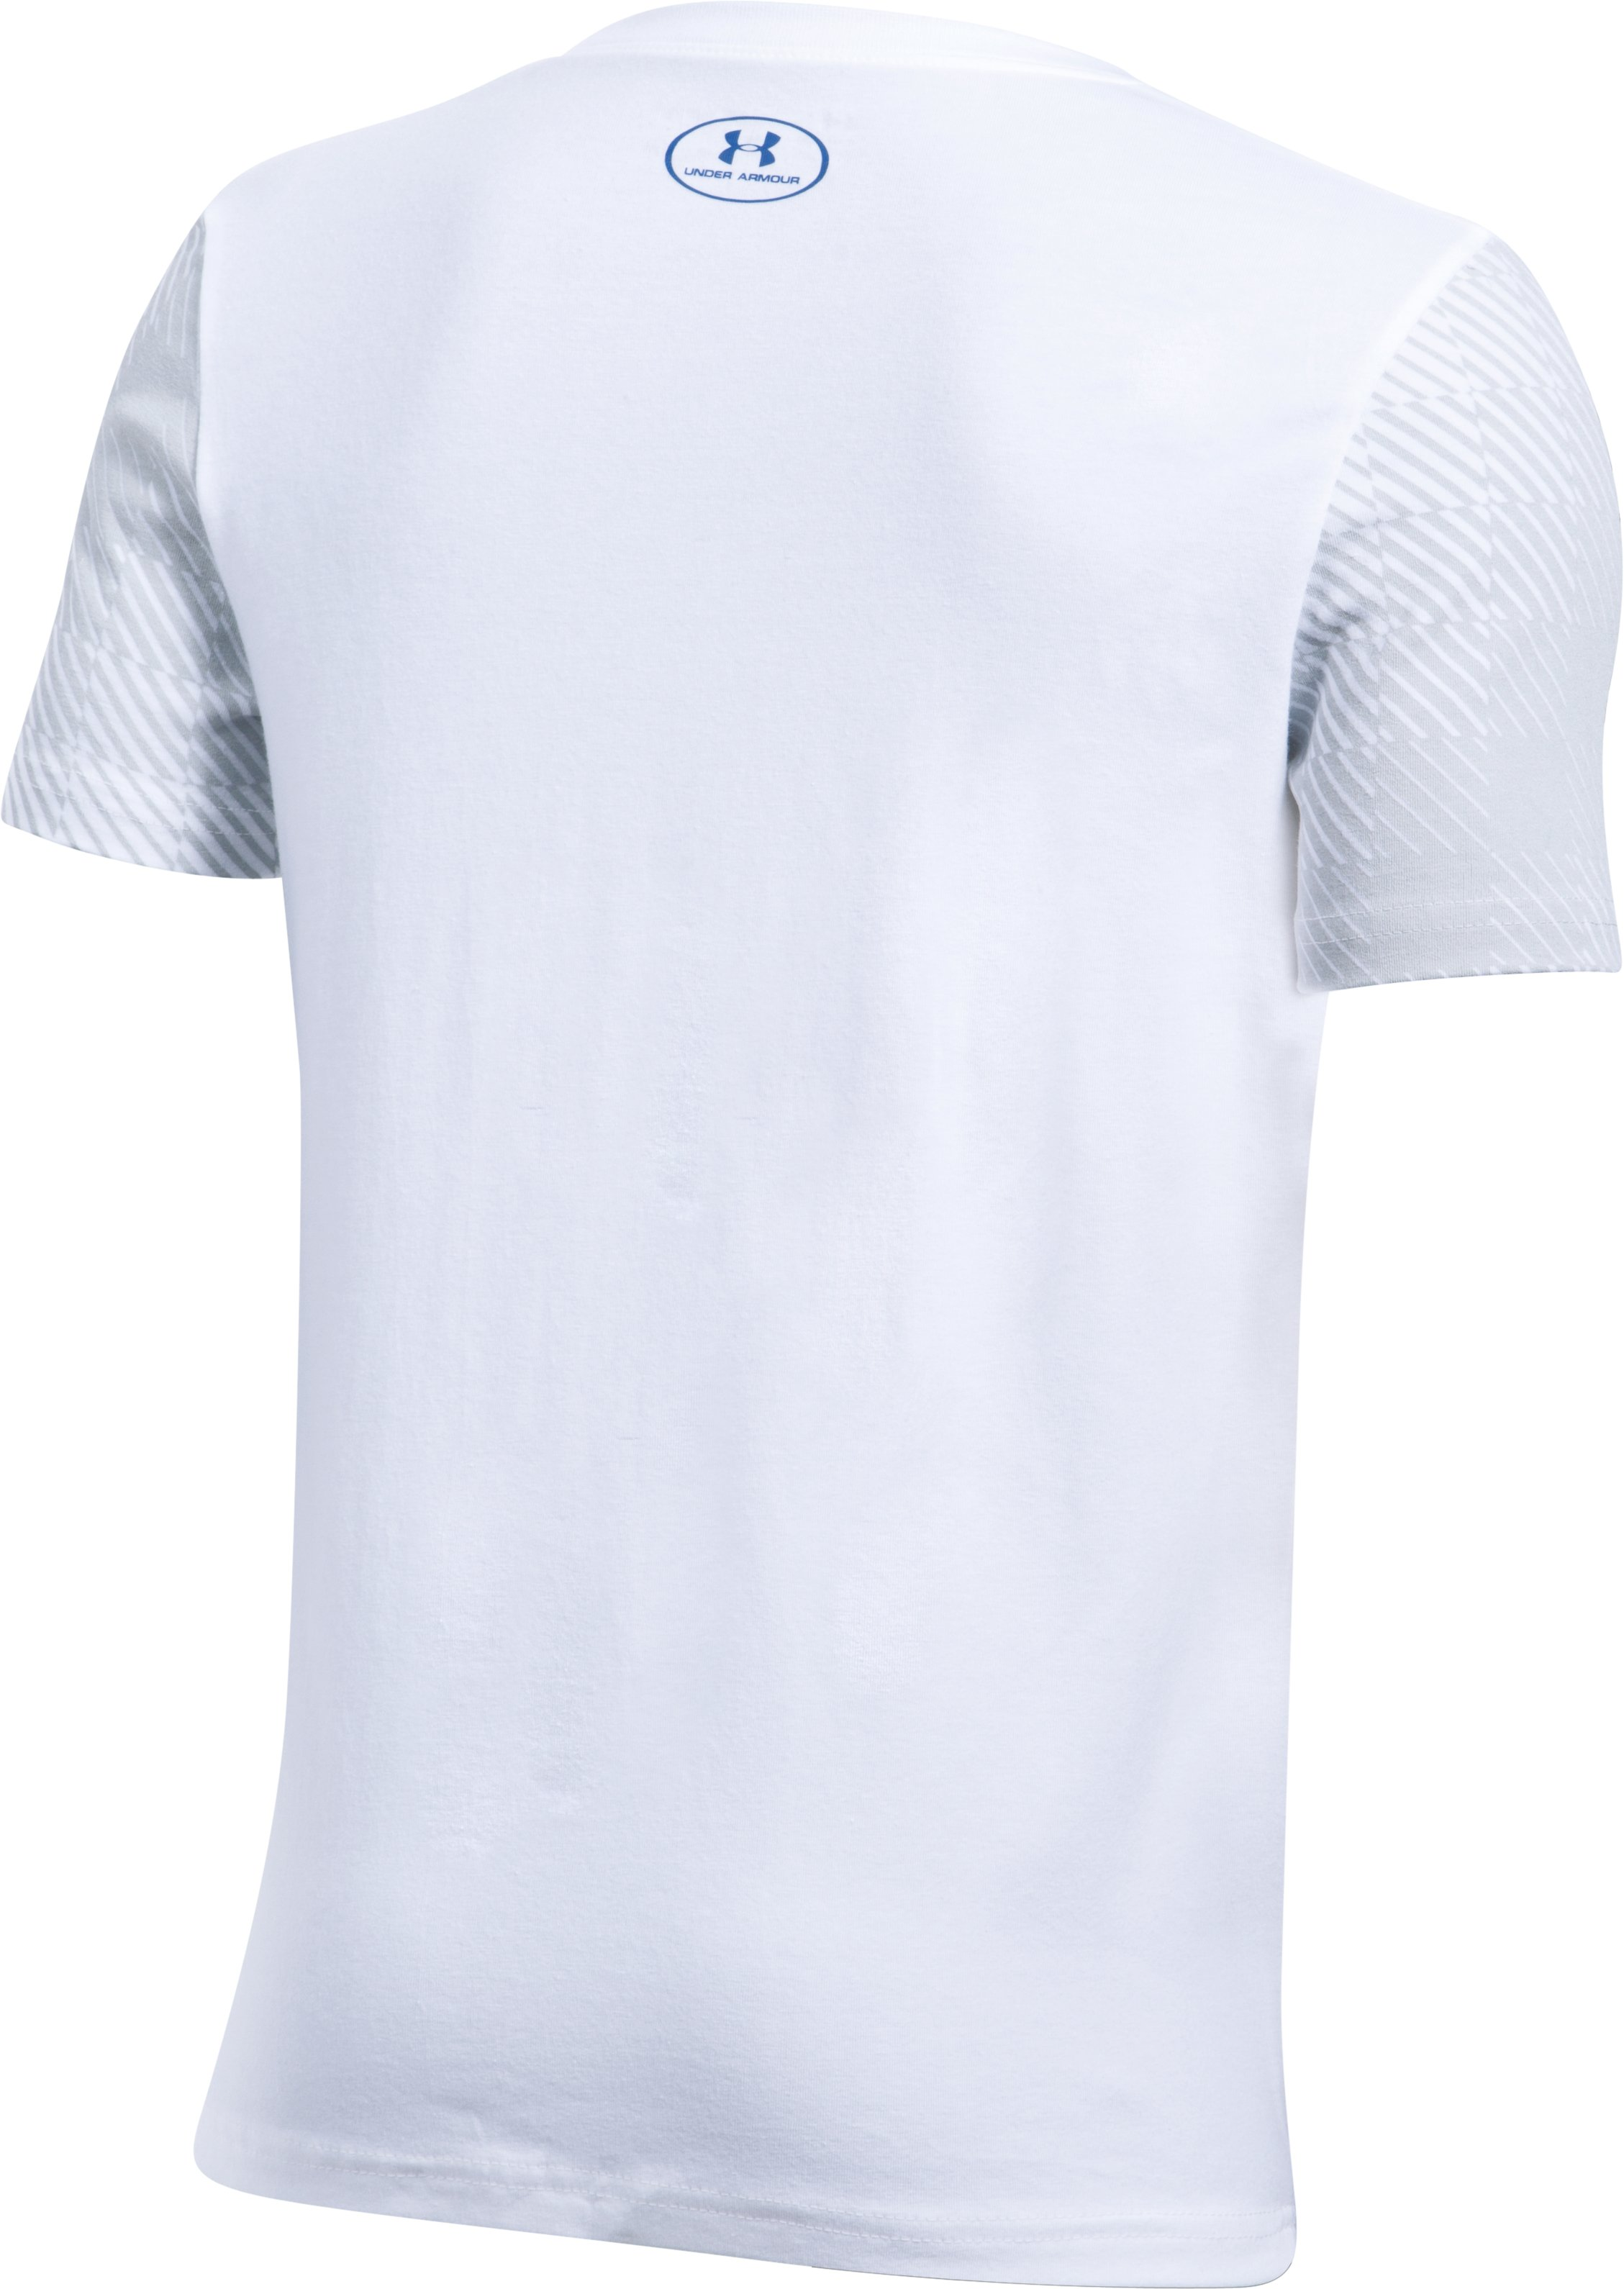 Boys' SC30 ICDAT T-Shirt, White,